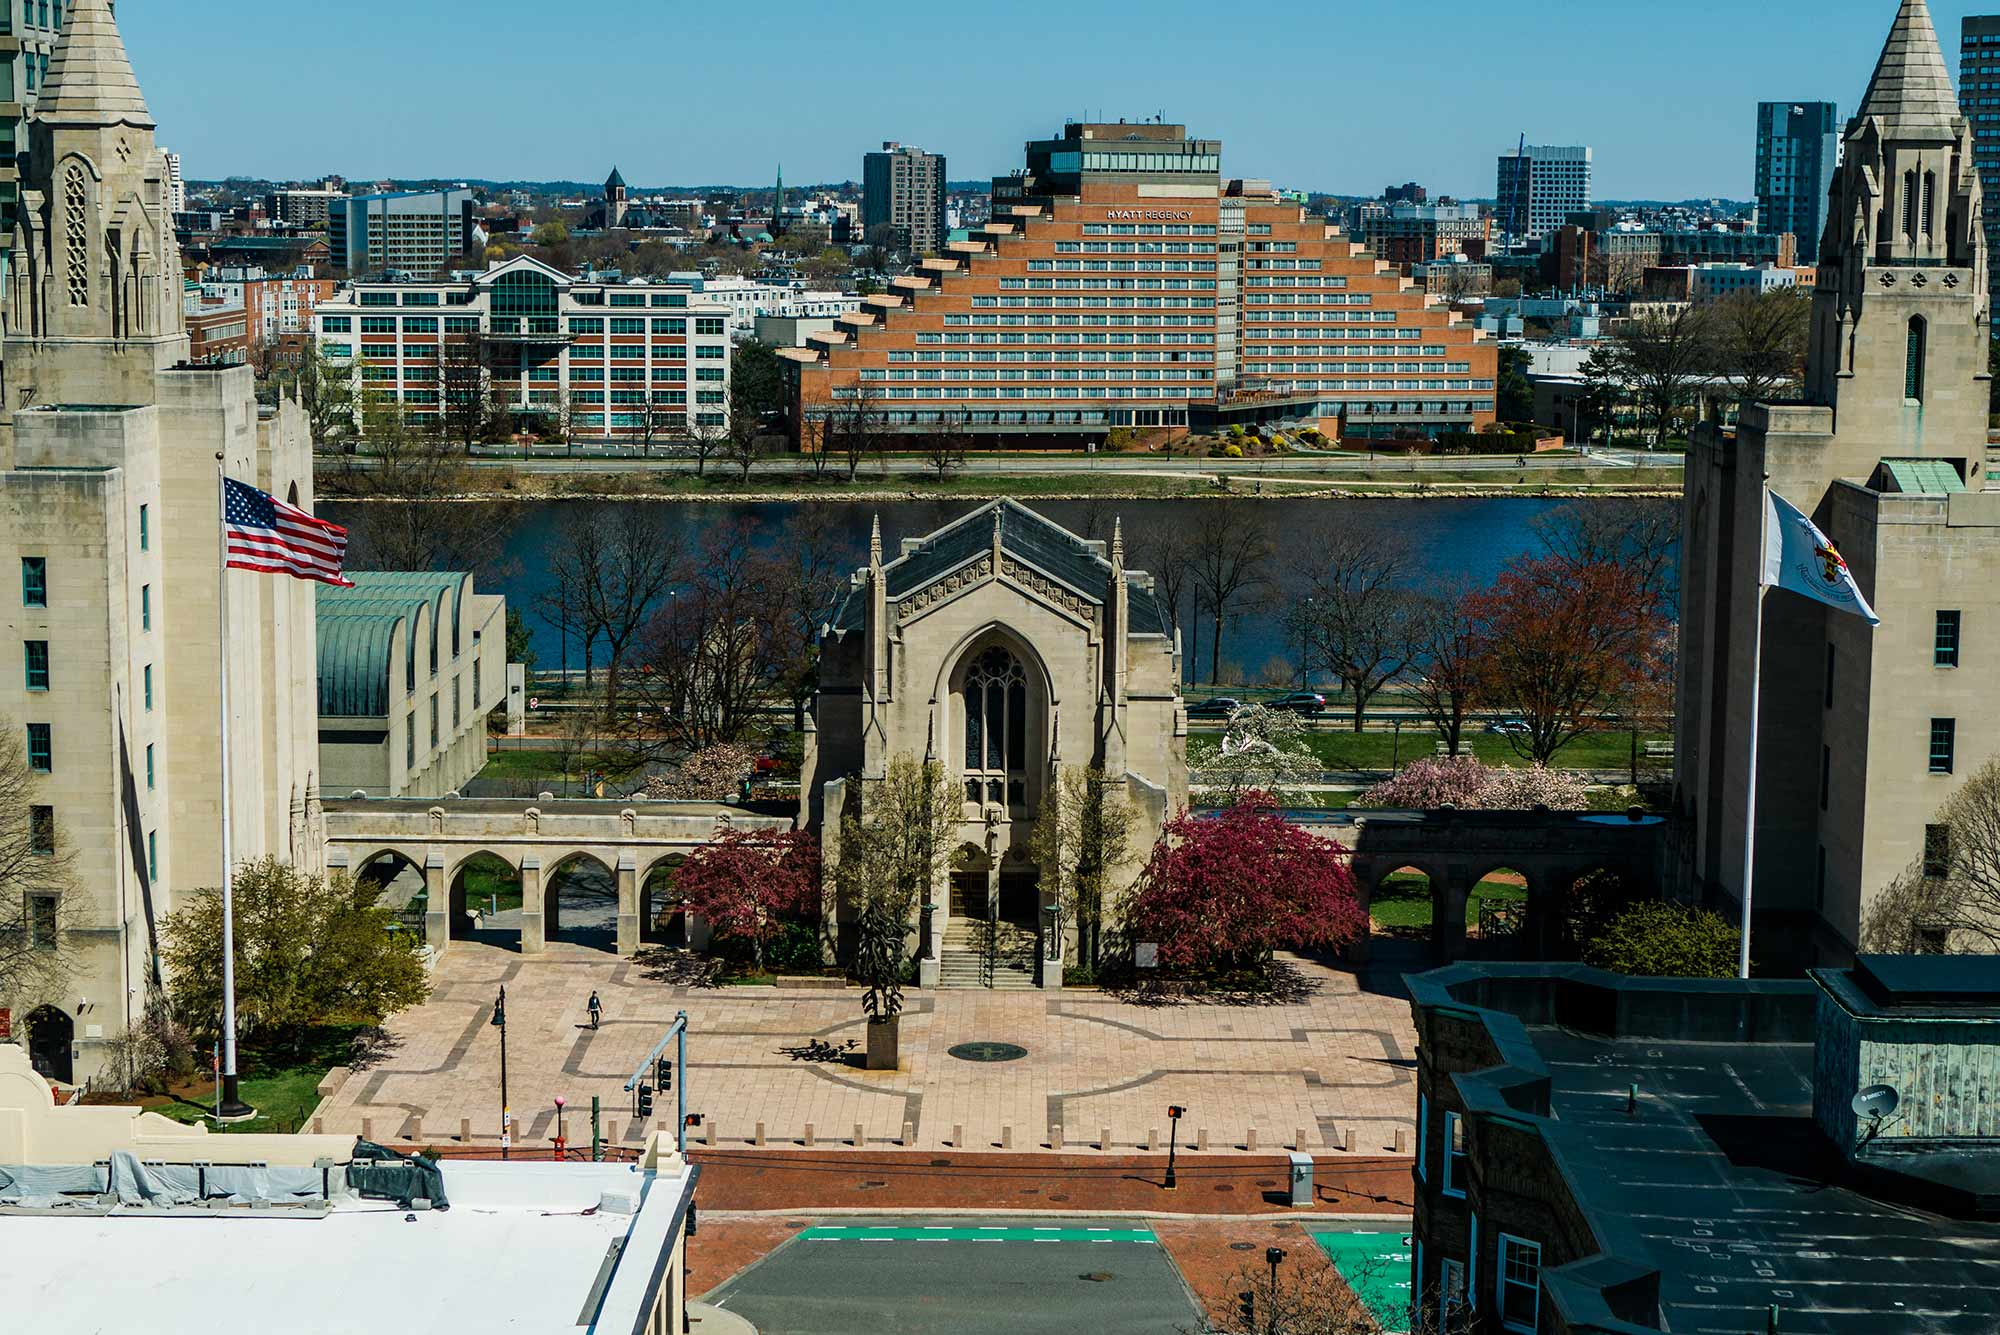 Drone shot of Marsh Chapel, Marsh Plaza, with hotel across the Charles River in the background. The plaza and street out front is empty.